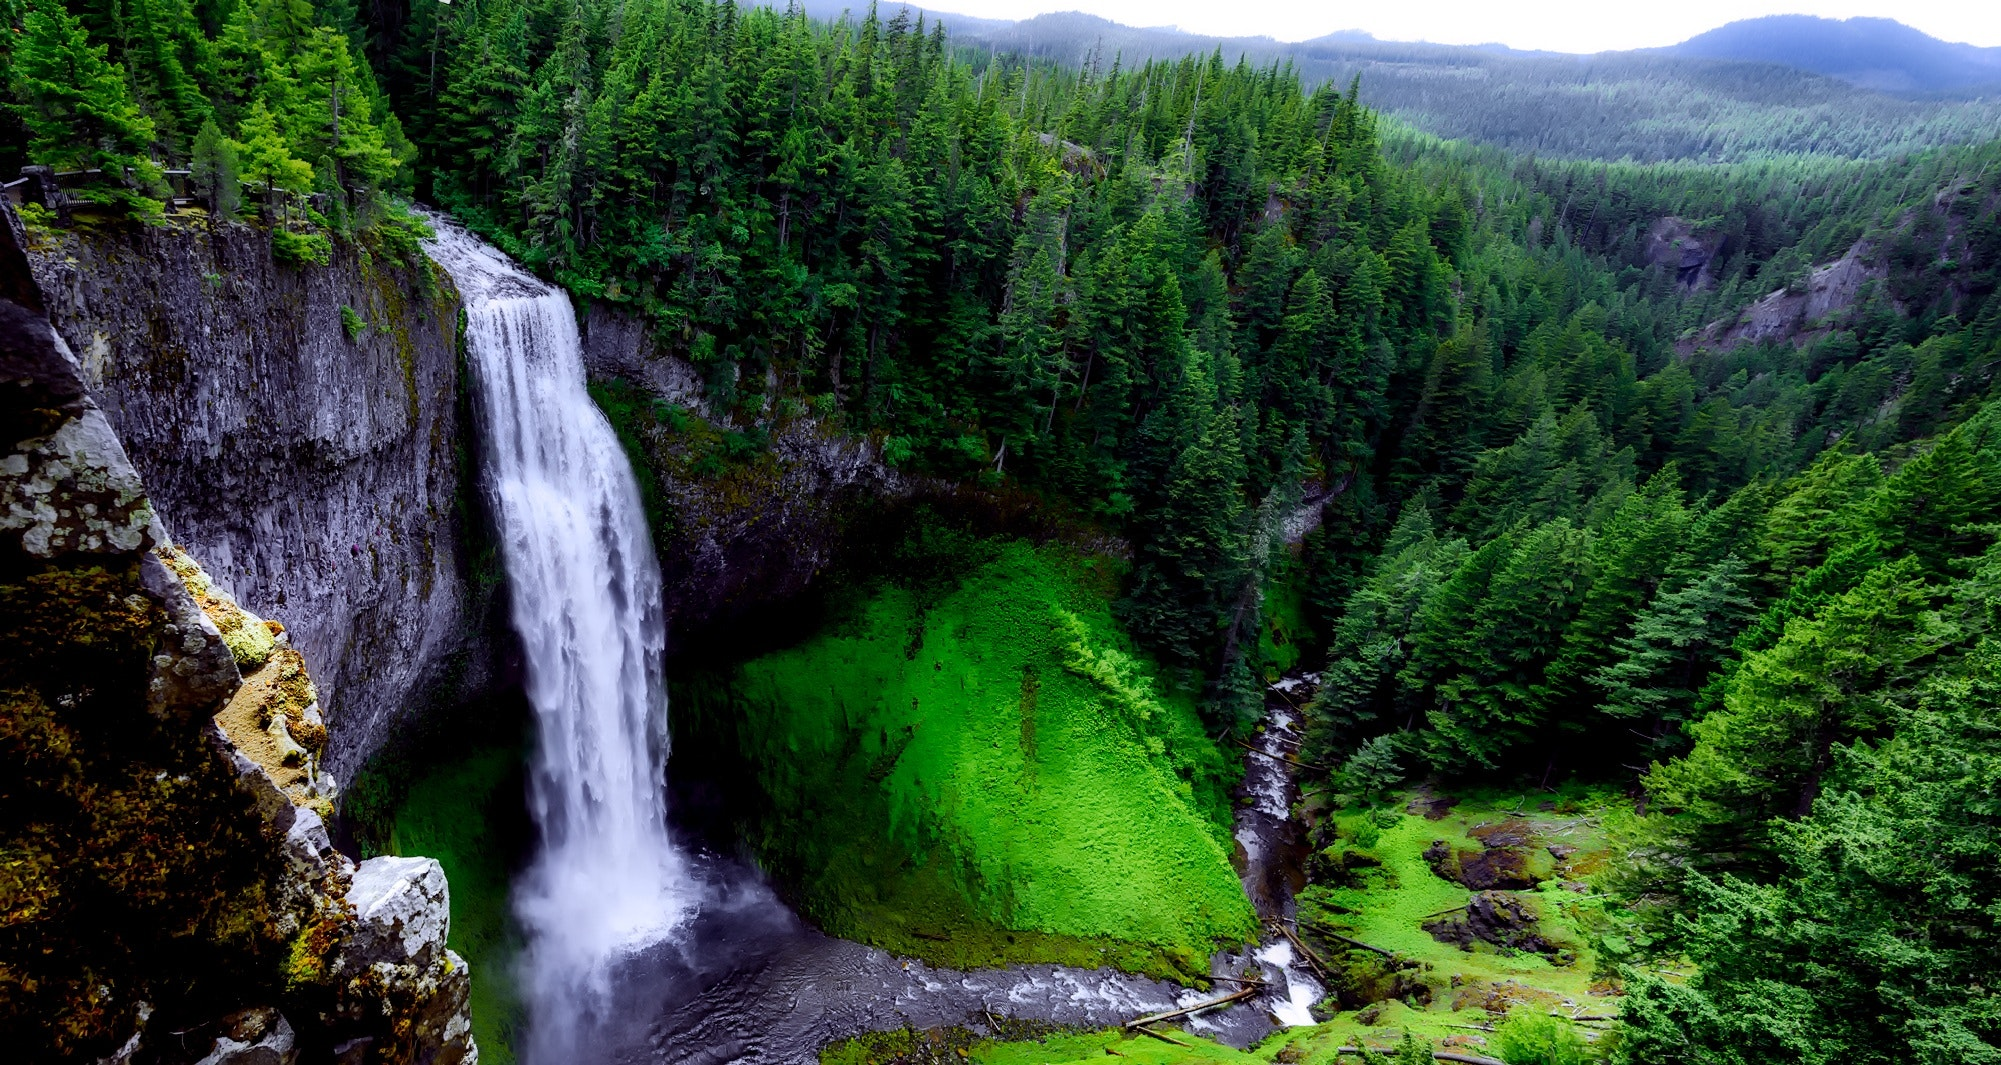 High Quality Waterfall Pictures And Photos That You Can Use For Your Website Or As Wallpaper Desktop Mobile Phones